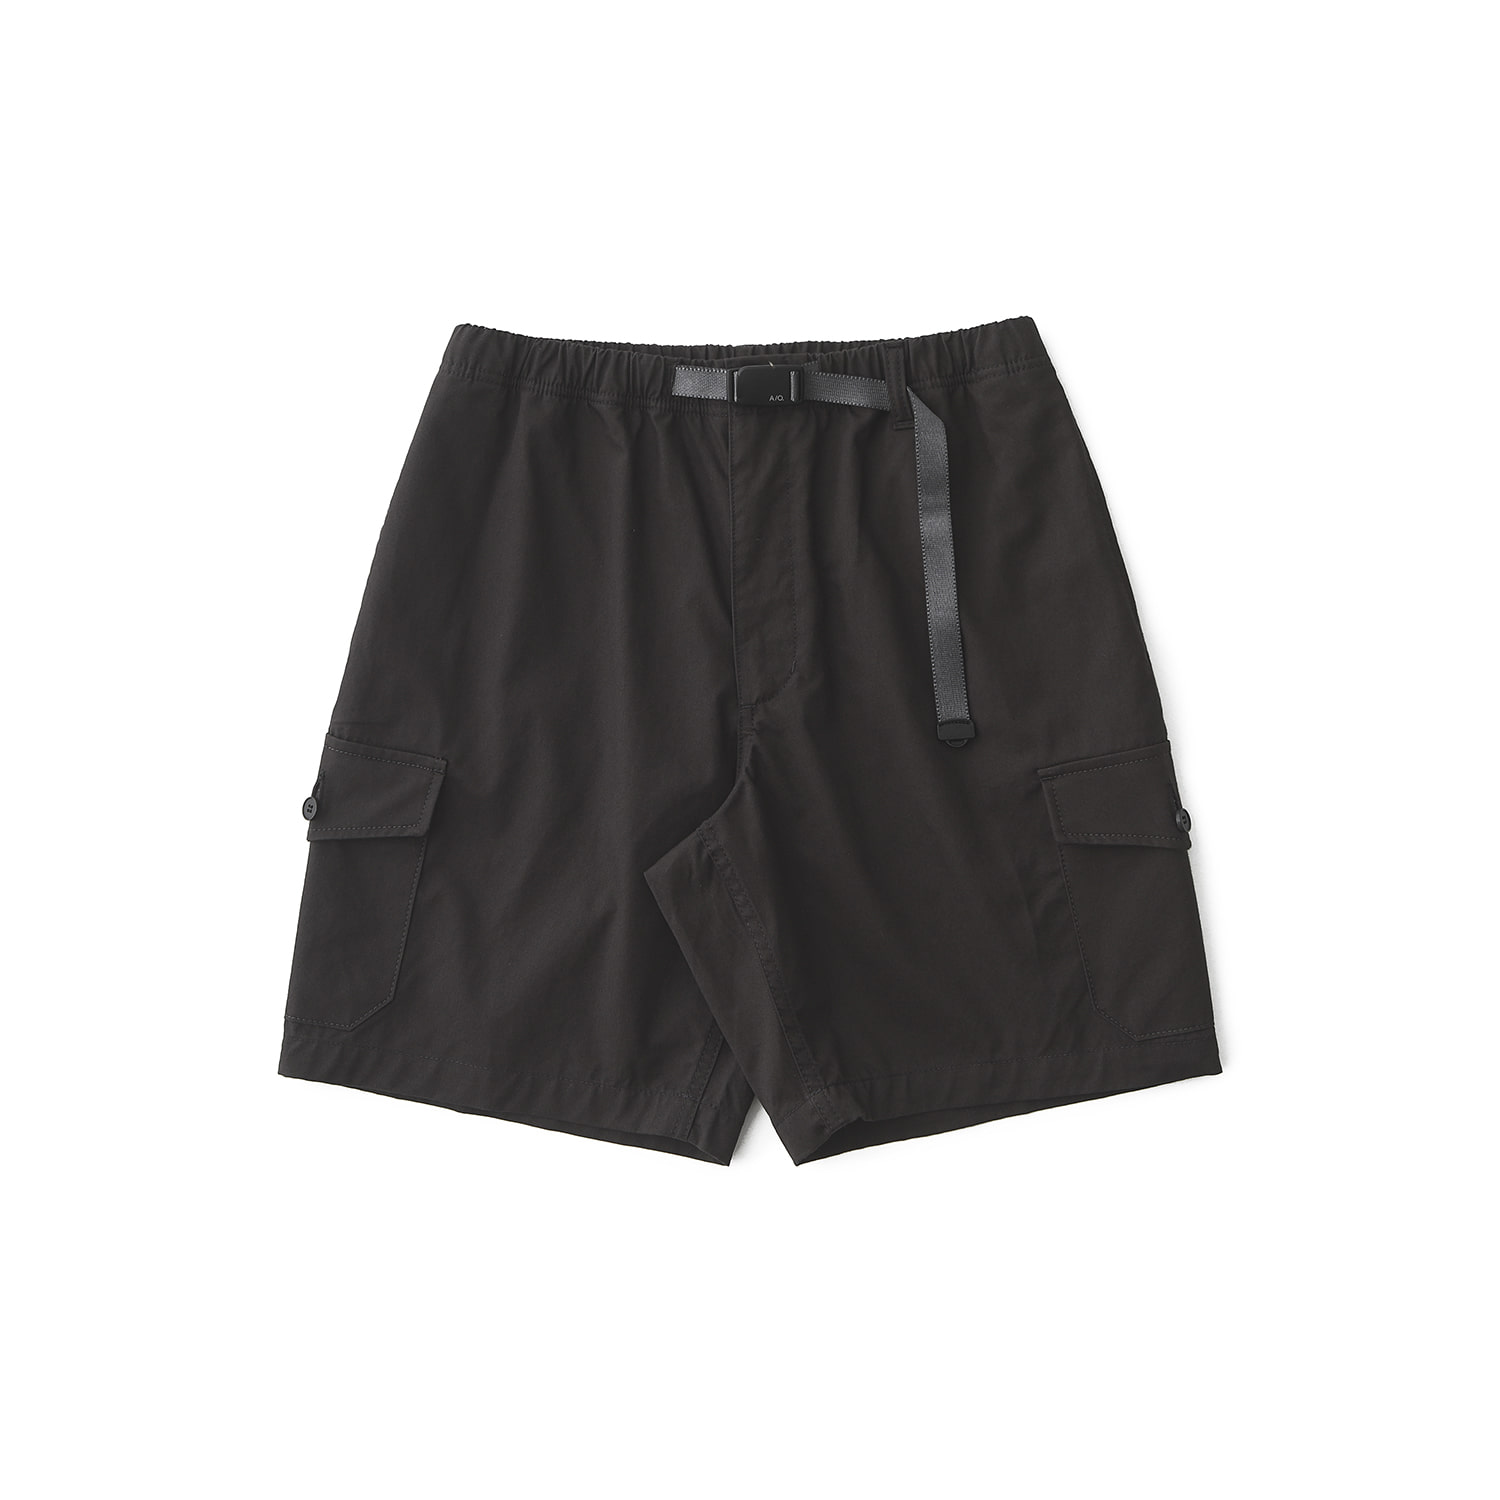 25% OFF_STROLLER DYED SHORTS (Almost Black)